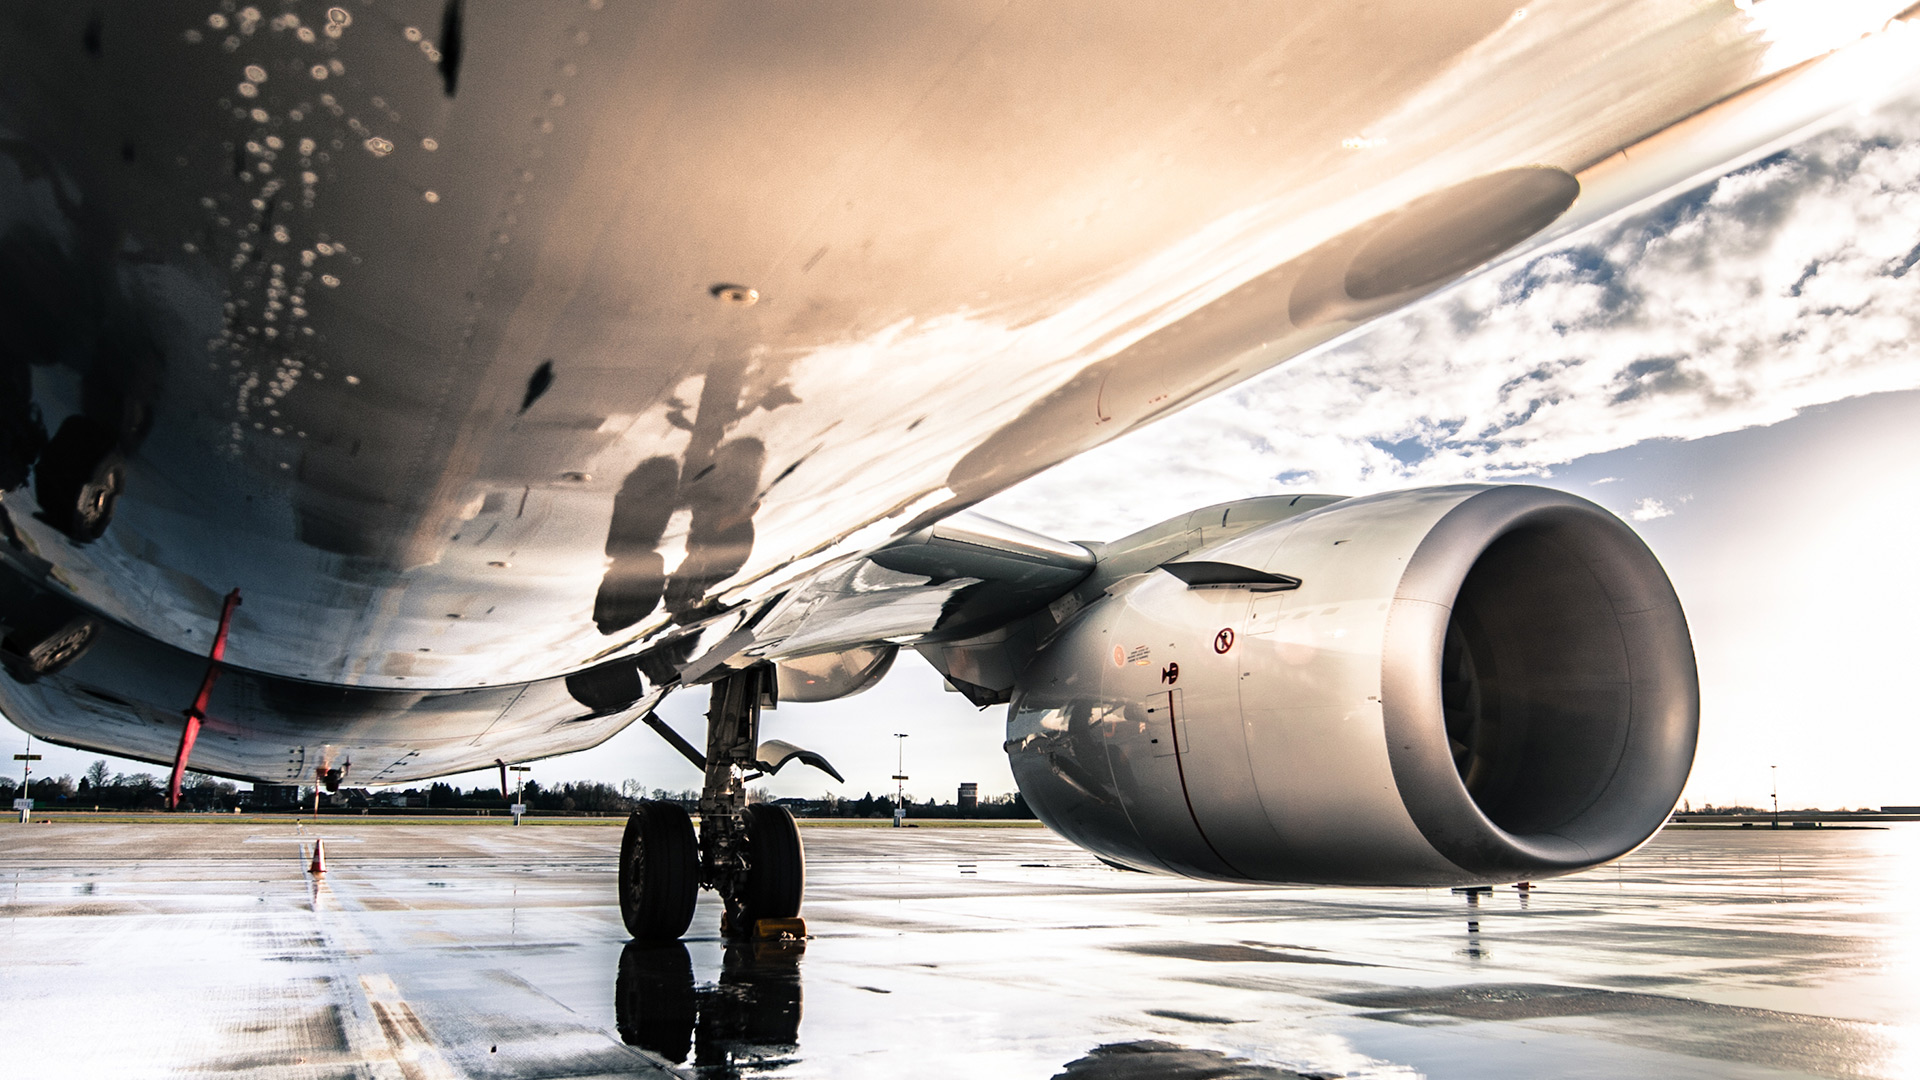 COVID-19 and the practical implications for the global aviation industry